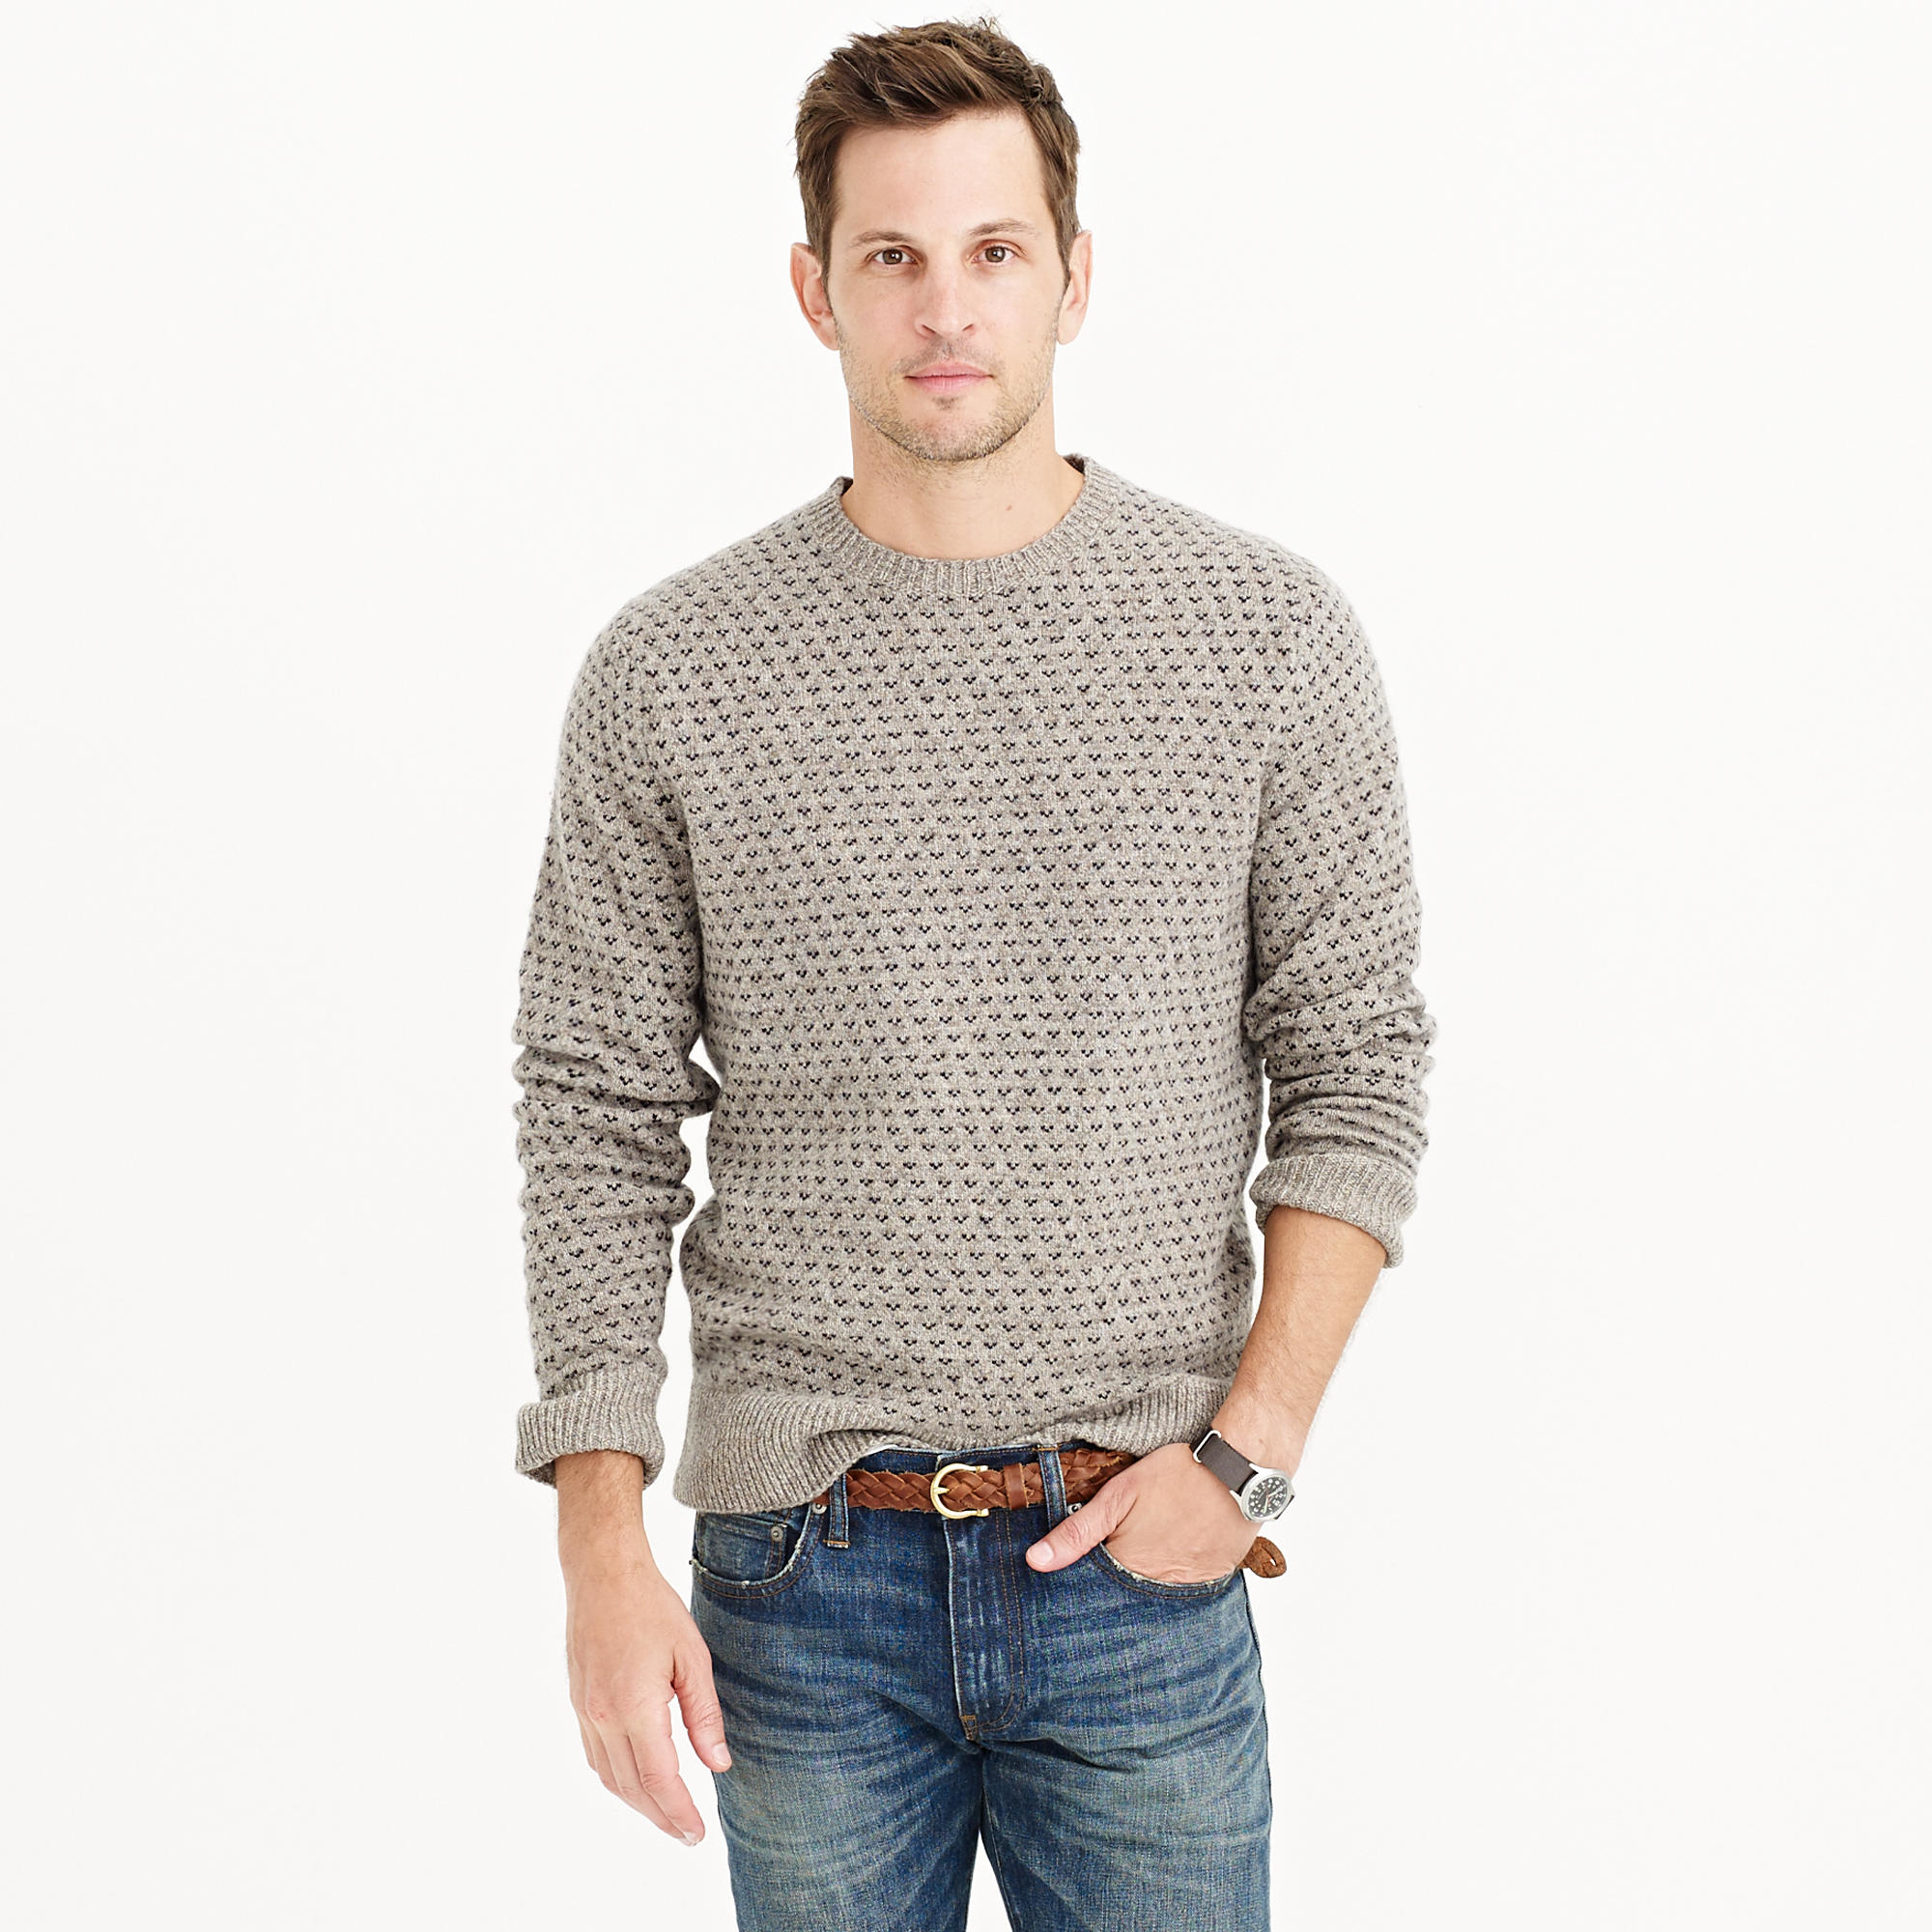 821d6d904 Lyst - J.Crew Lambswool Jacquard Sweater in Gray for Men